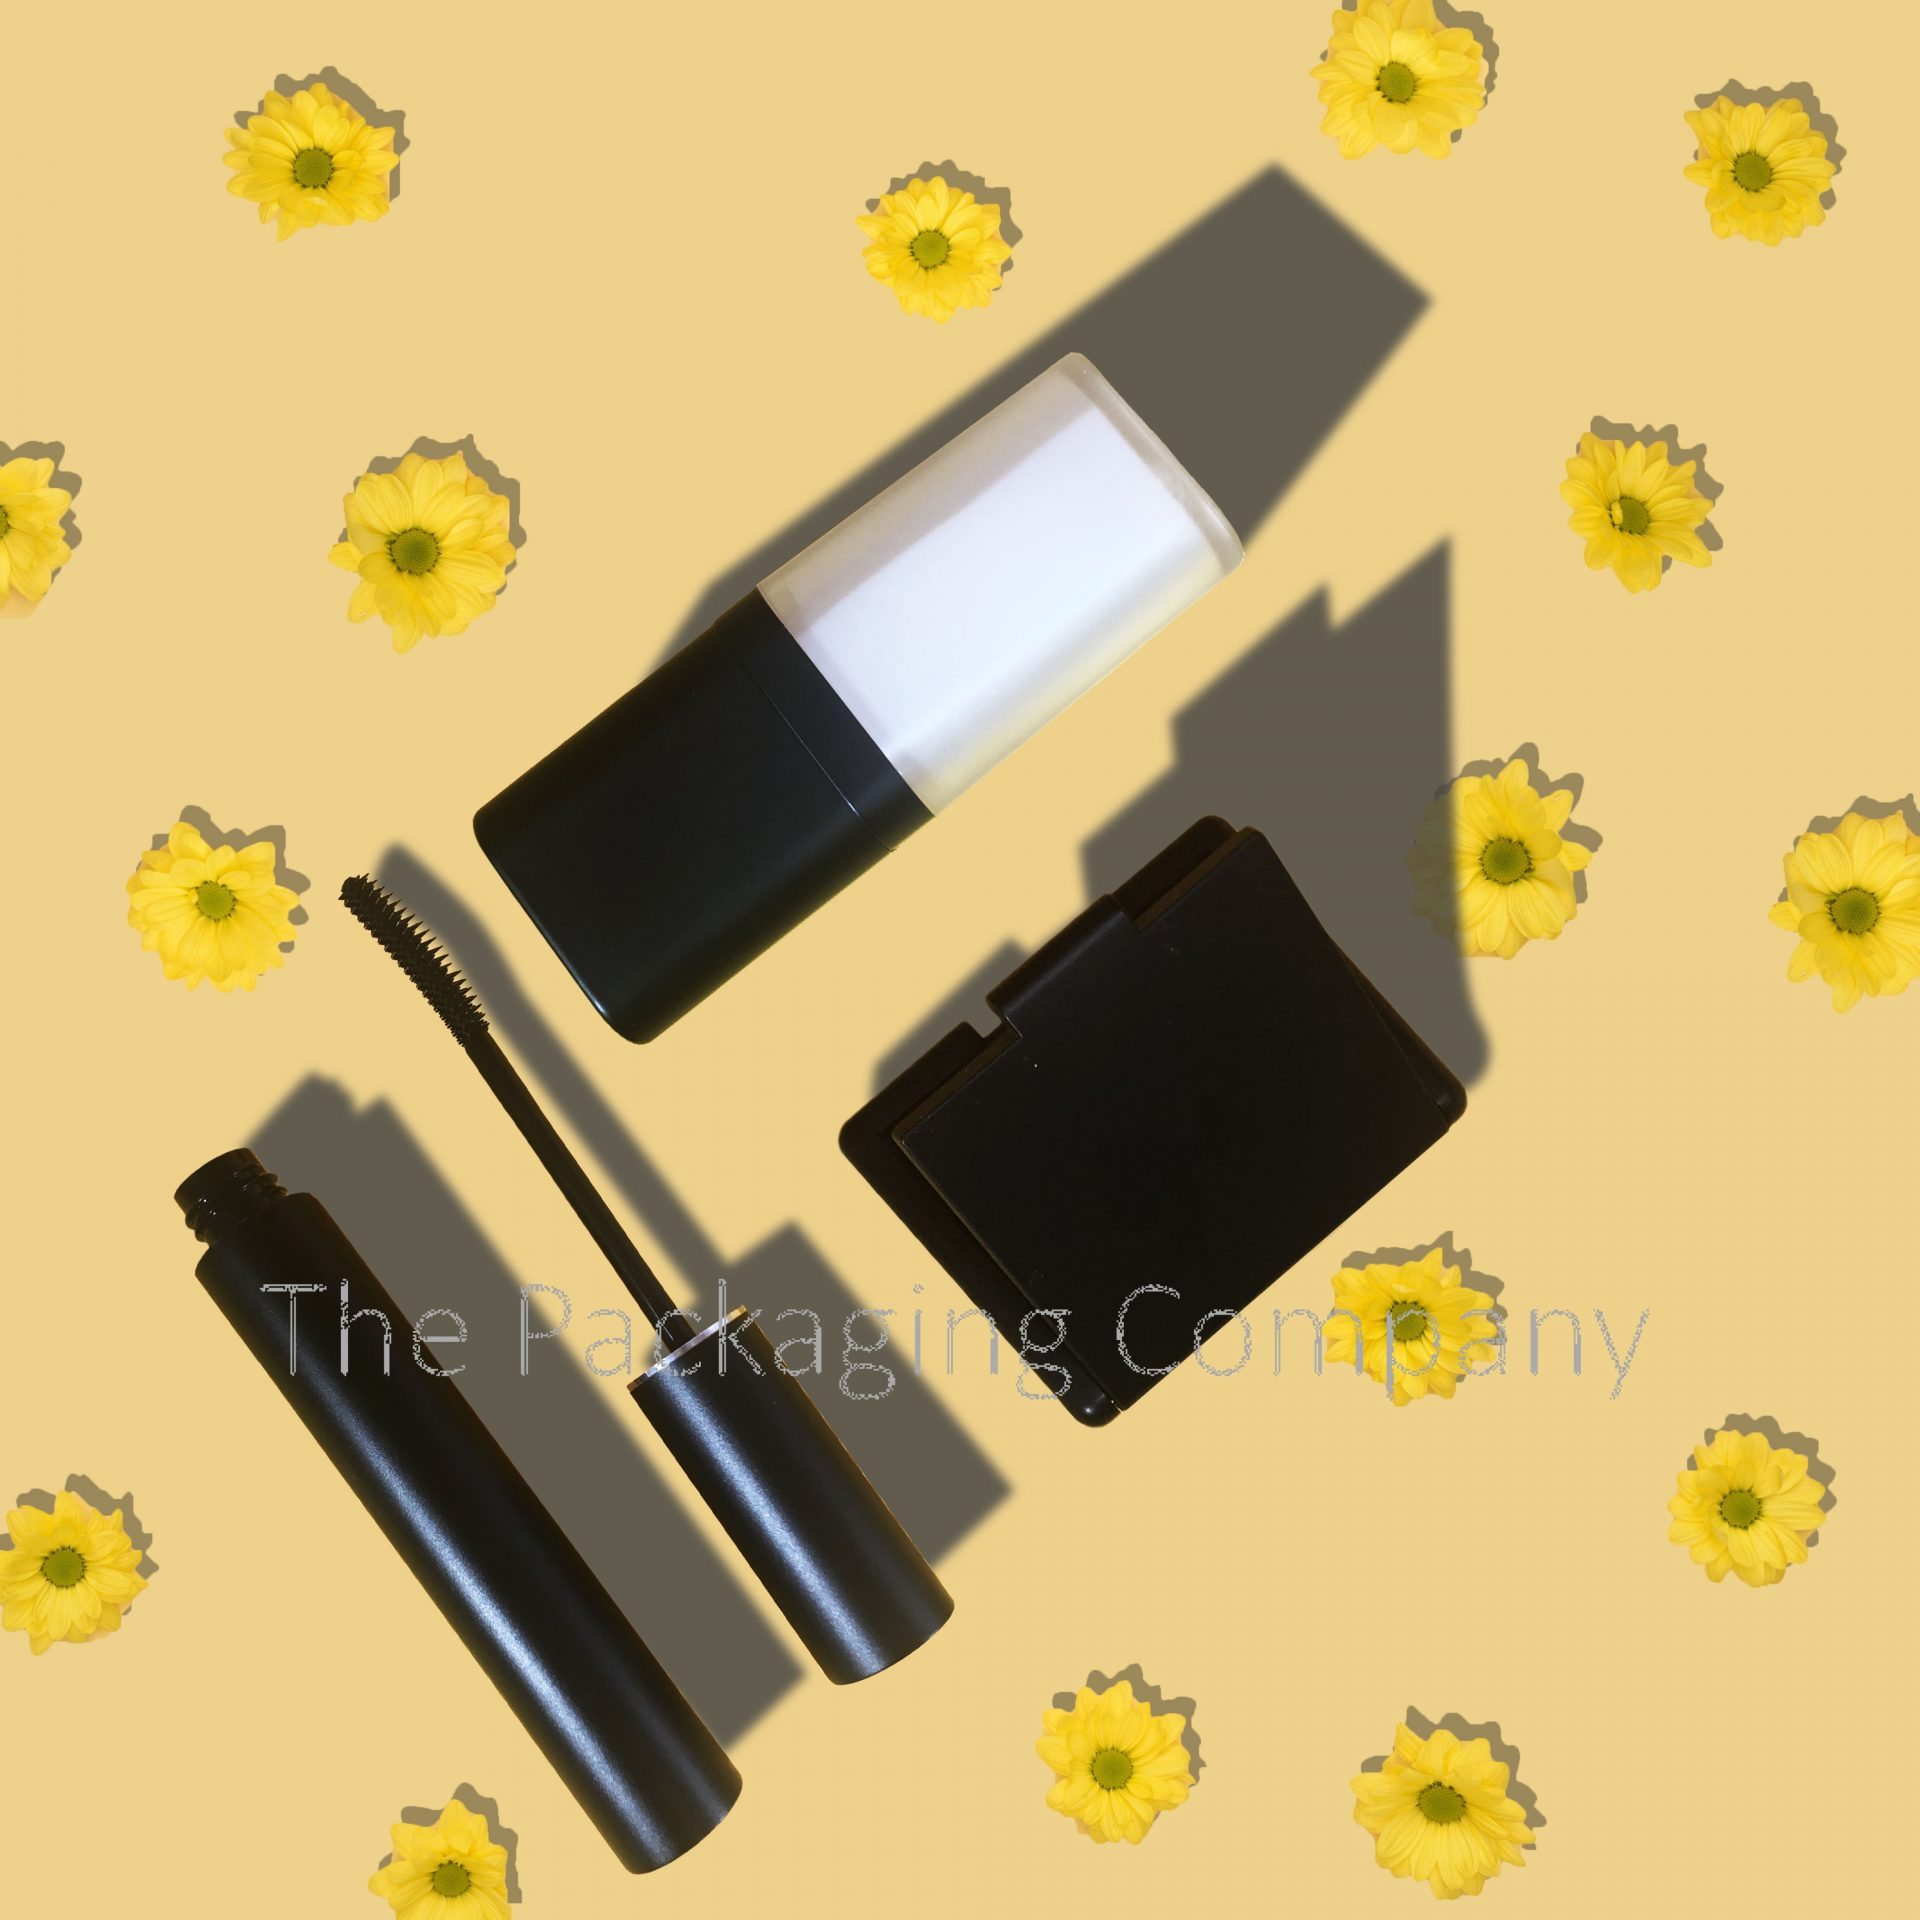 Cosmetic bottle, compact, and mascara on a yellow flower background